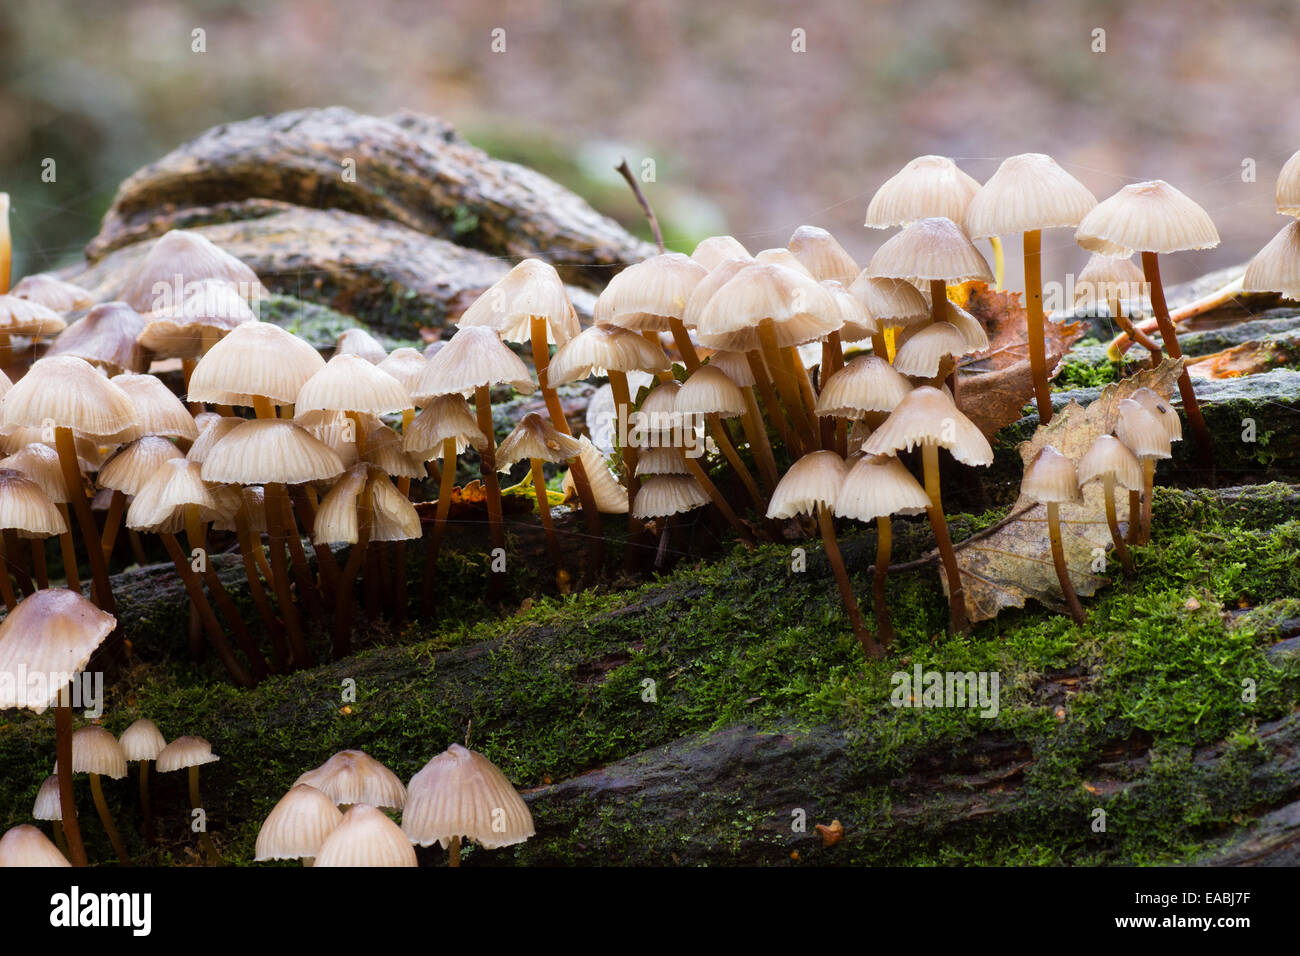 Fruiting mushrooms of the clustered or oak bonnet, Mycena inclinata, growing on a fallen oak branch - Stock Image